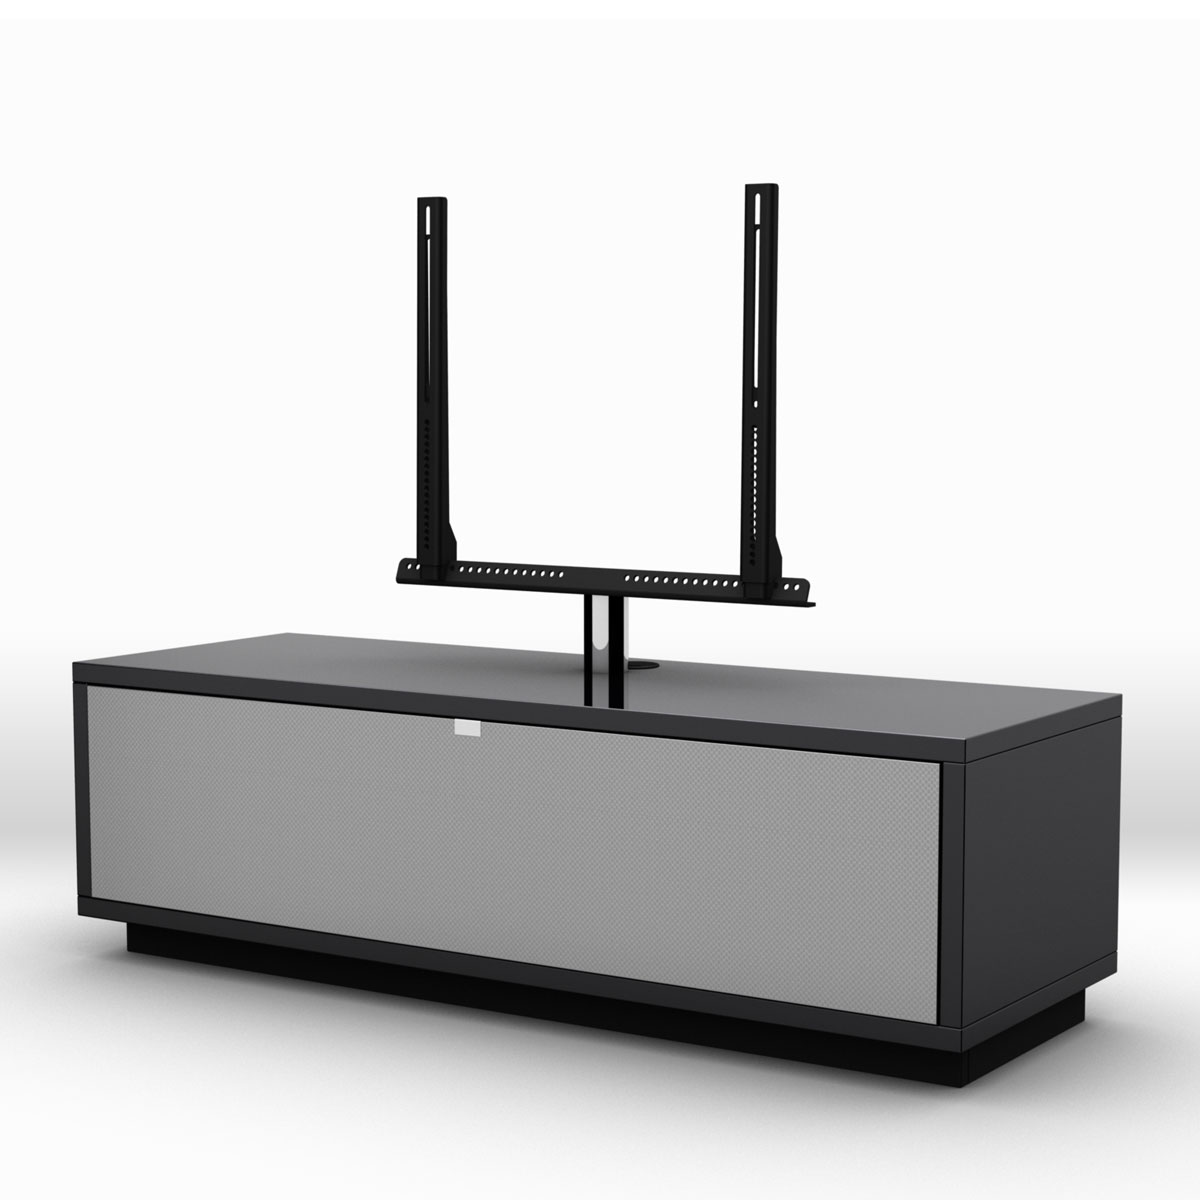 router schrank vergrern with router schrank best gengt. Black Bedroom Furniture Sets. Home Design Ideas